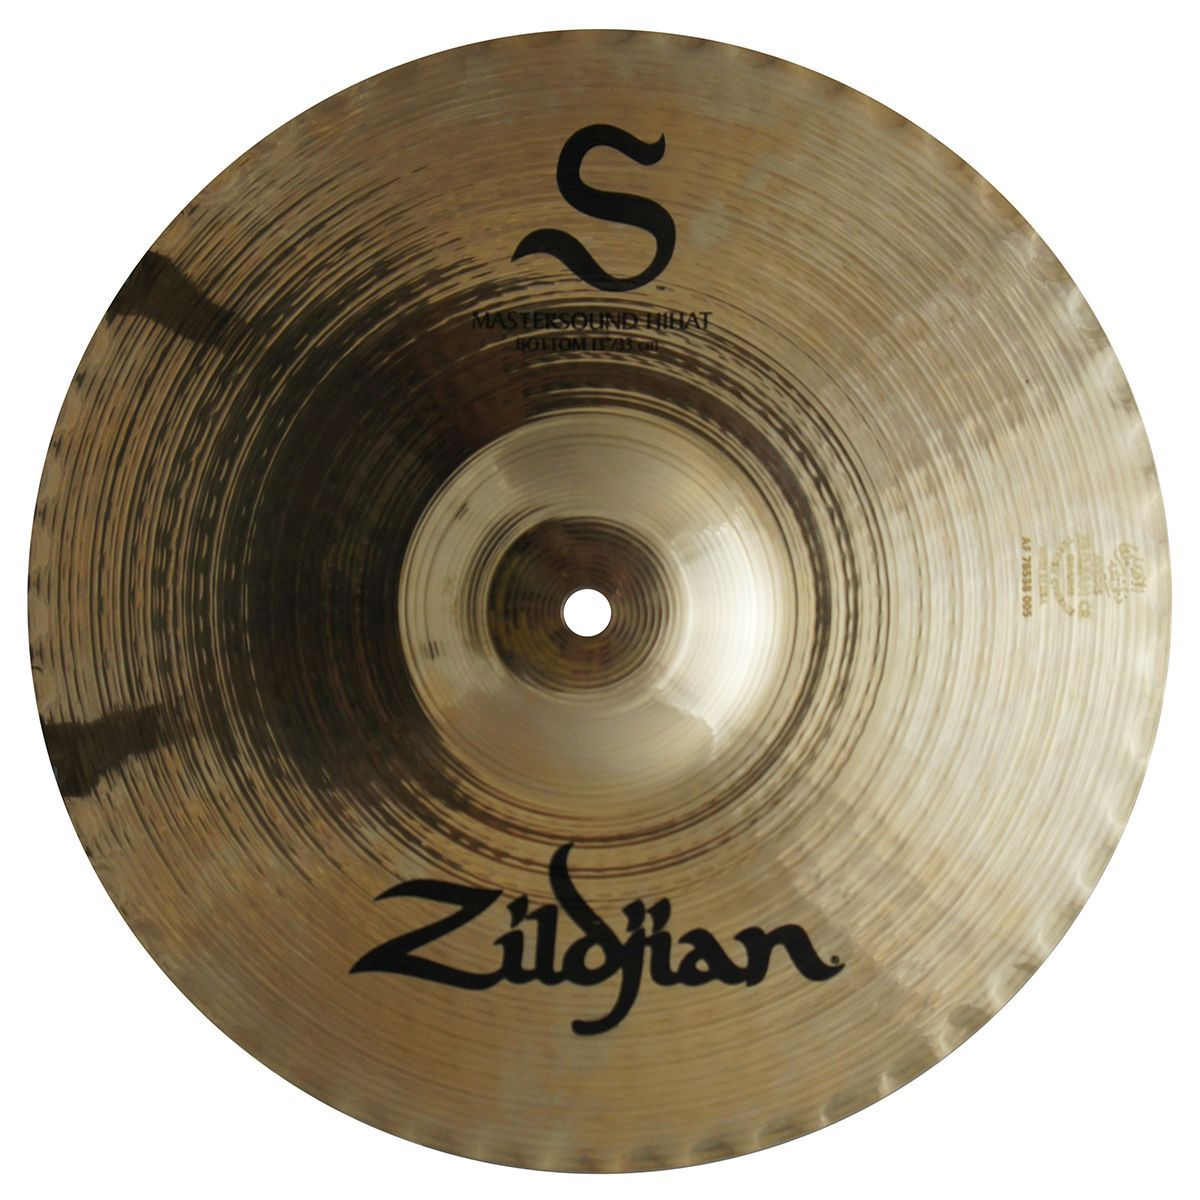 "Zildjian S13MB 13"" S Family Mastersound Hi-Hat Cymbal Bottom w/ Balanced Frequency Response - Brilliant Finish"